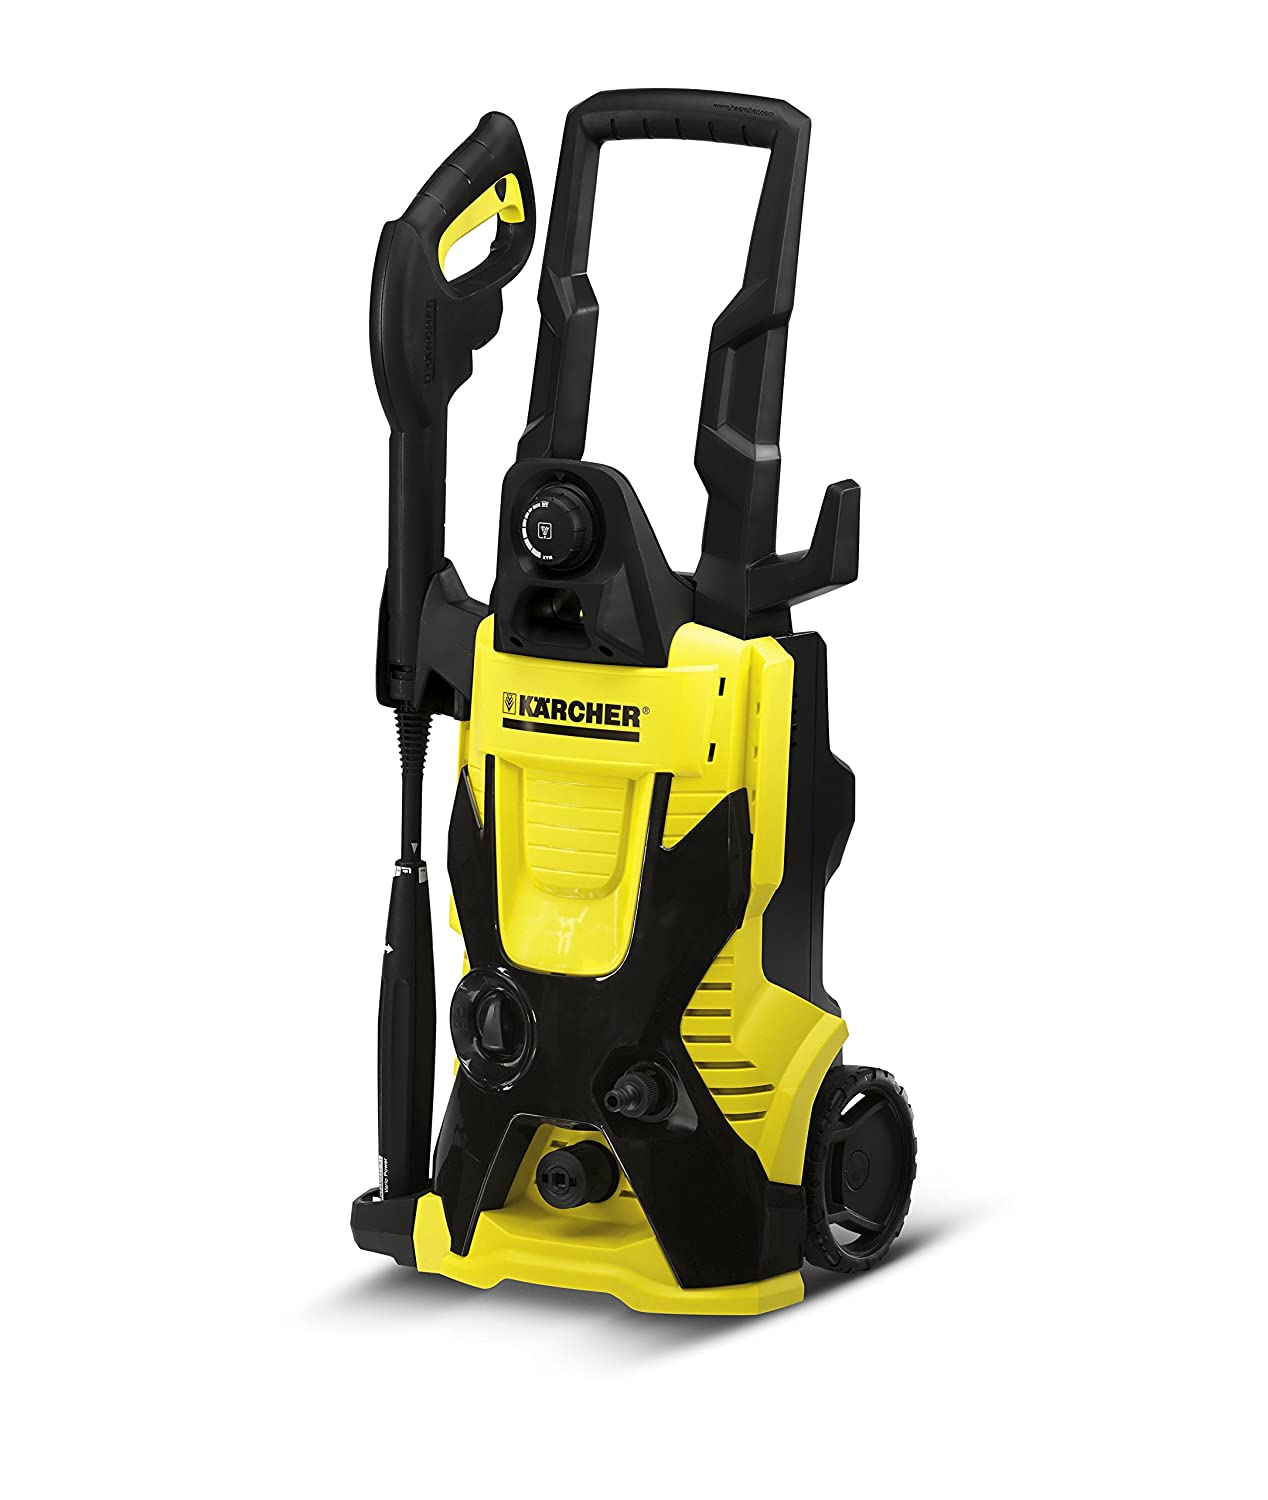 Karcher K3.540 Review